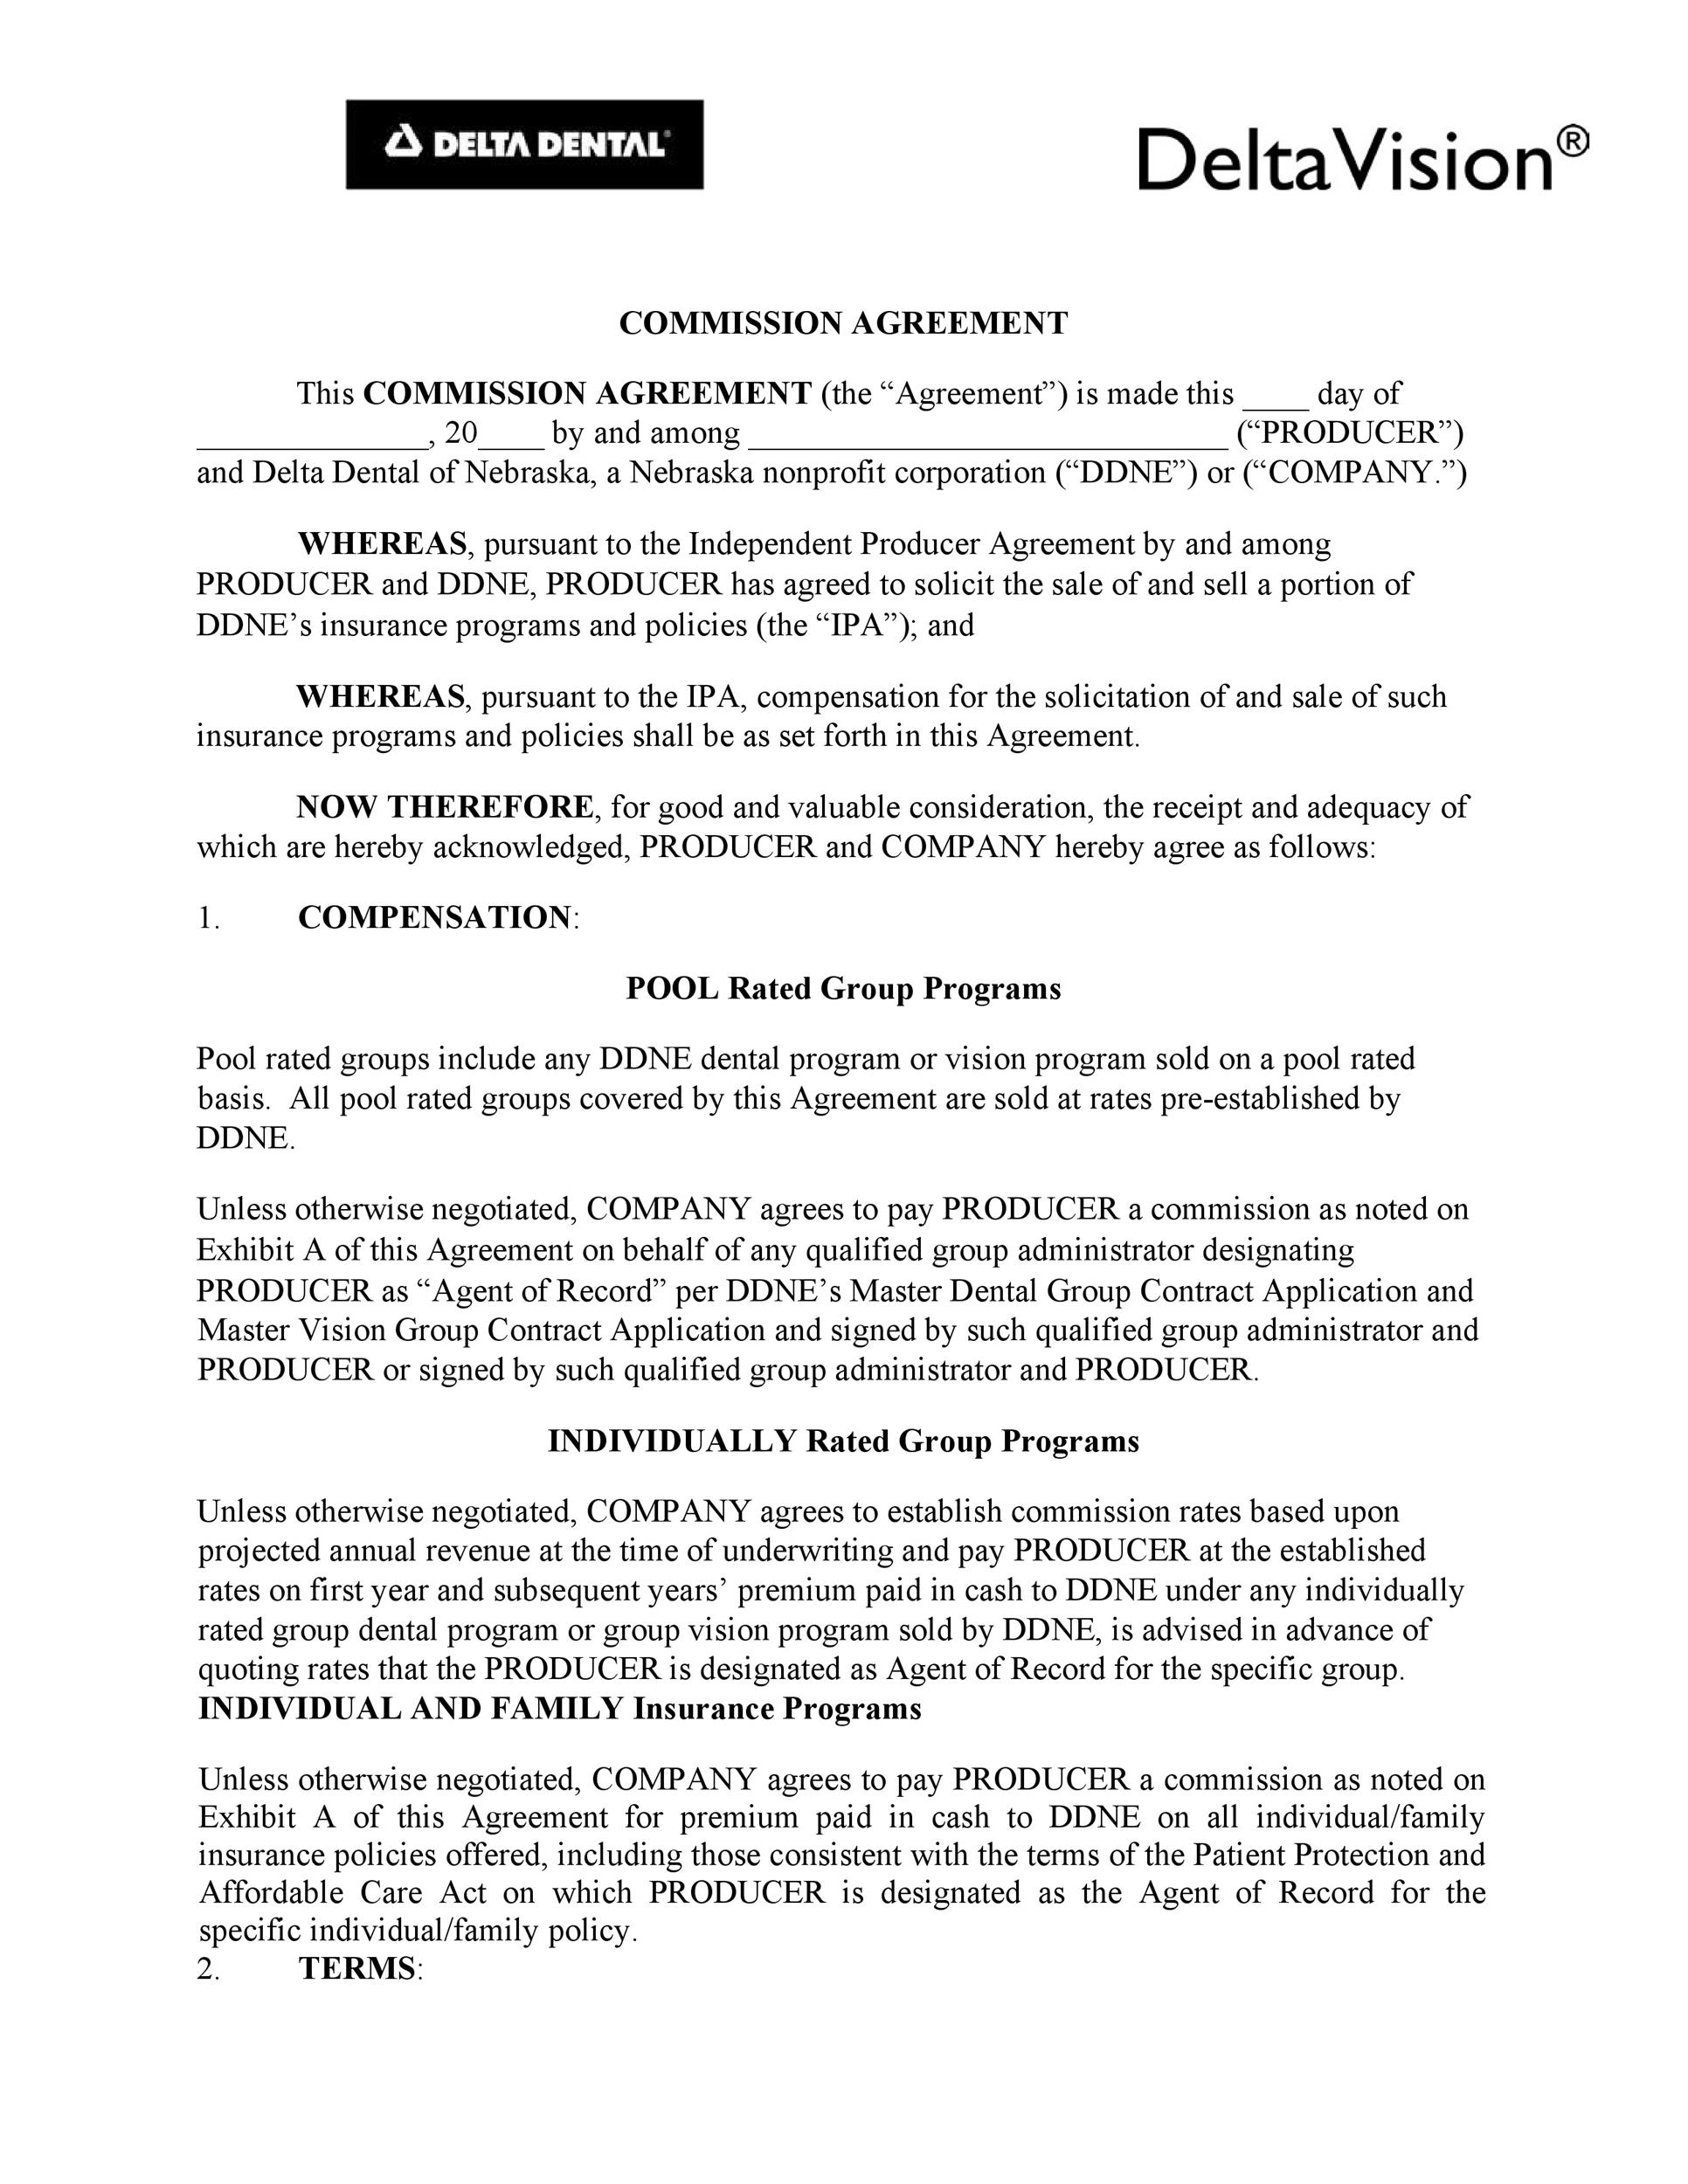 Free Commission Agreement Template 27